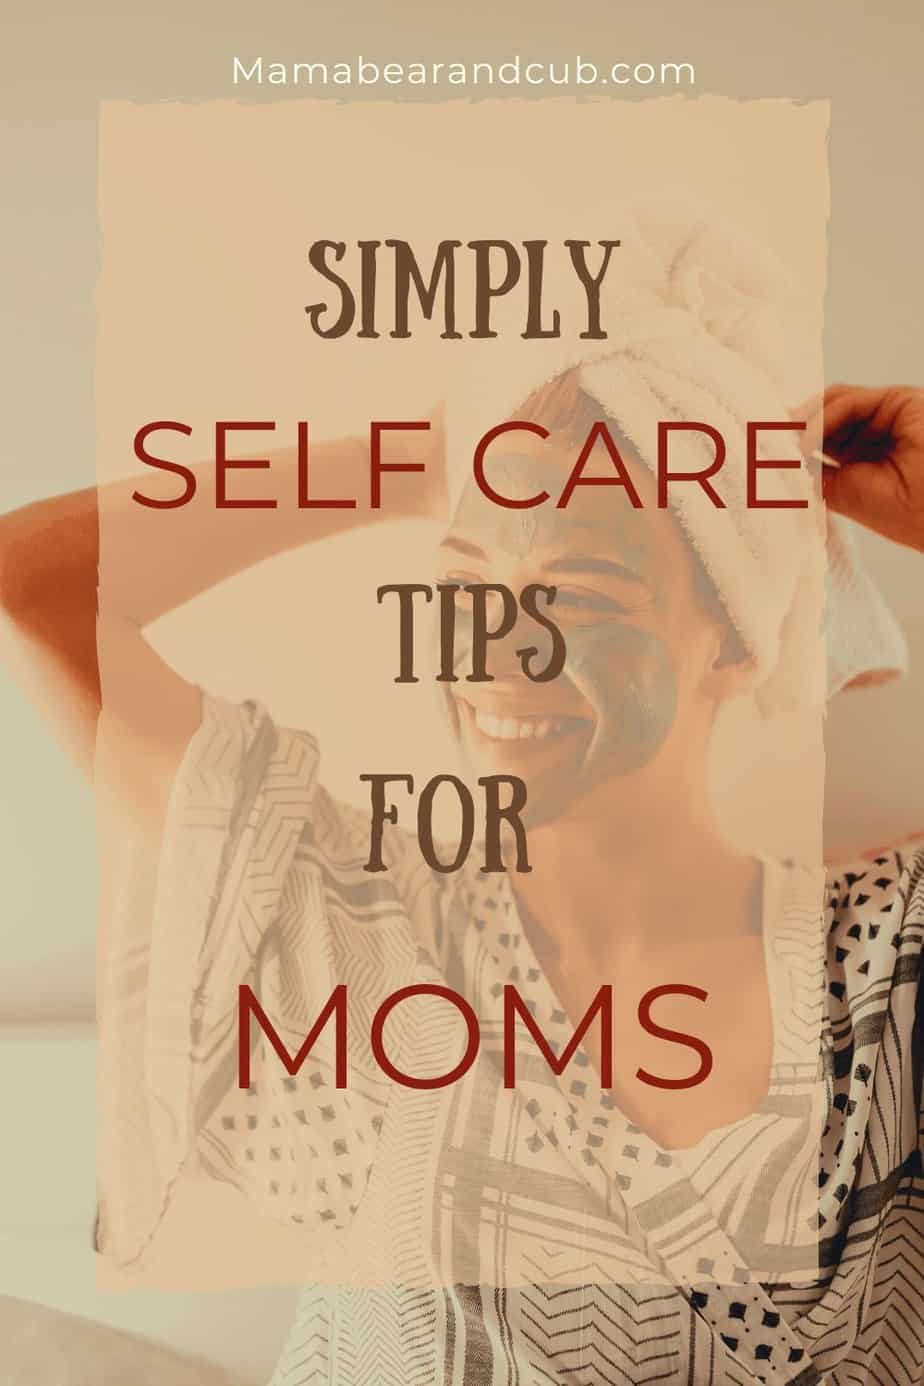 Self Care Tips For Moms